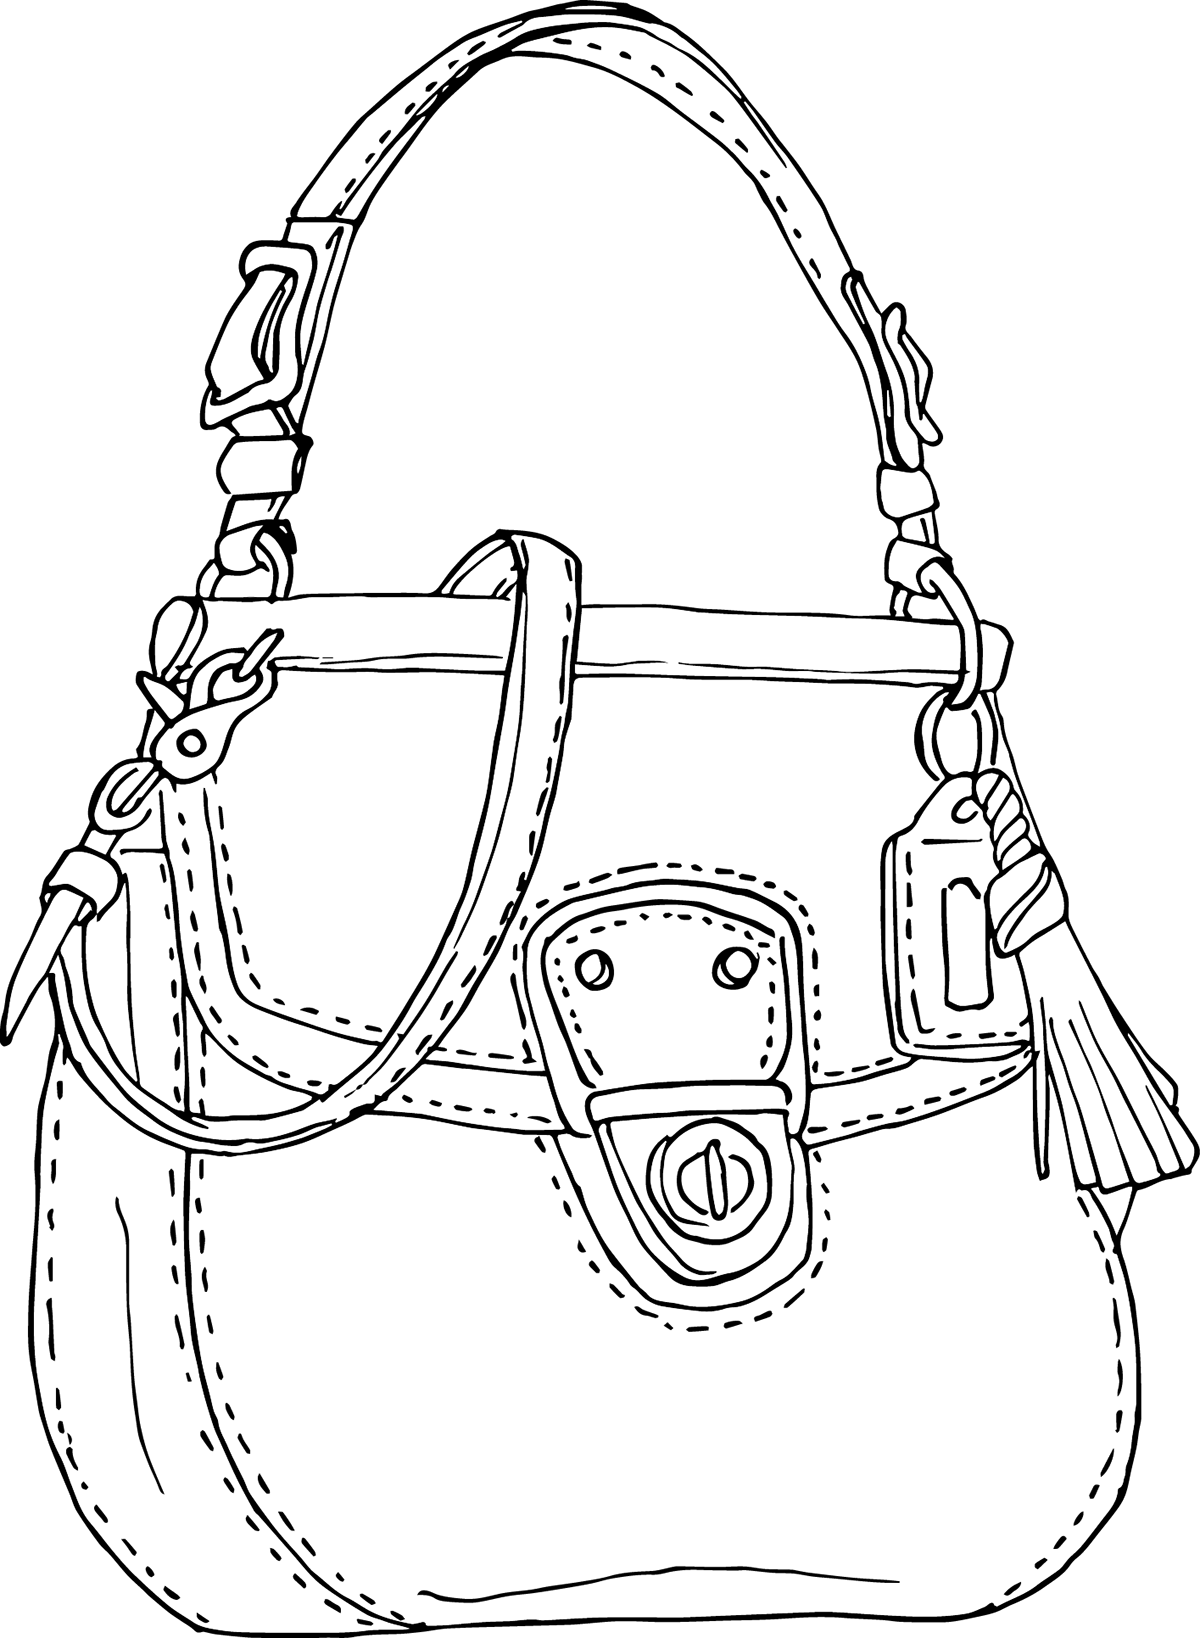 Wallet clipart small purse. Purses drawing at getdrawings